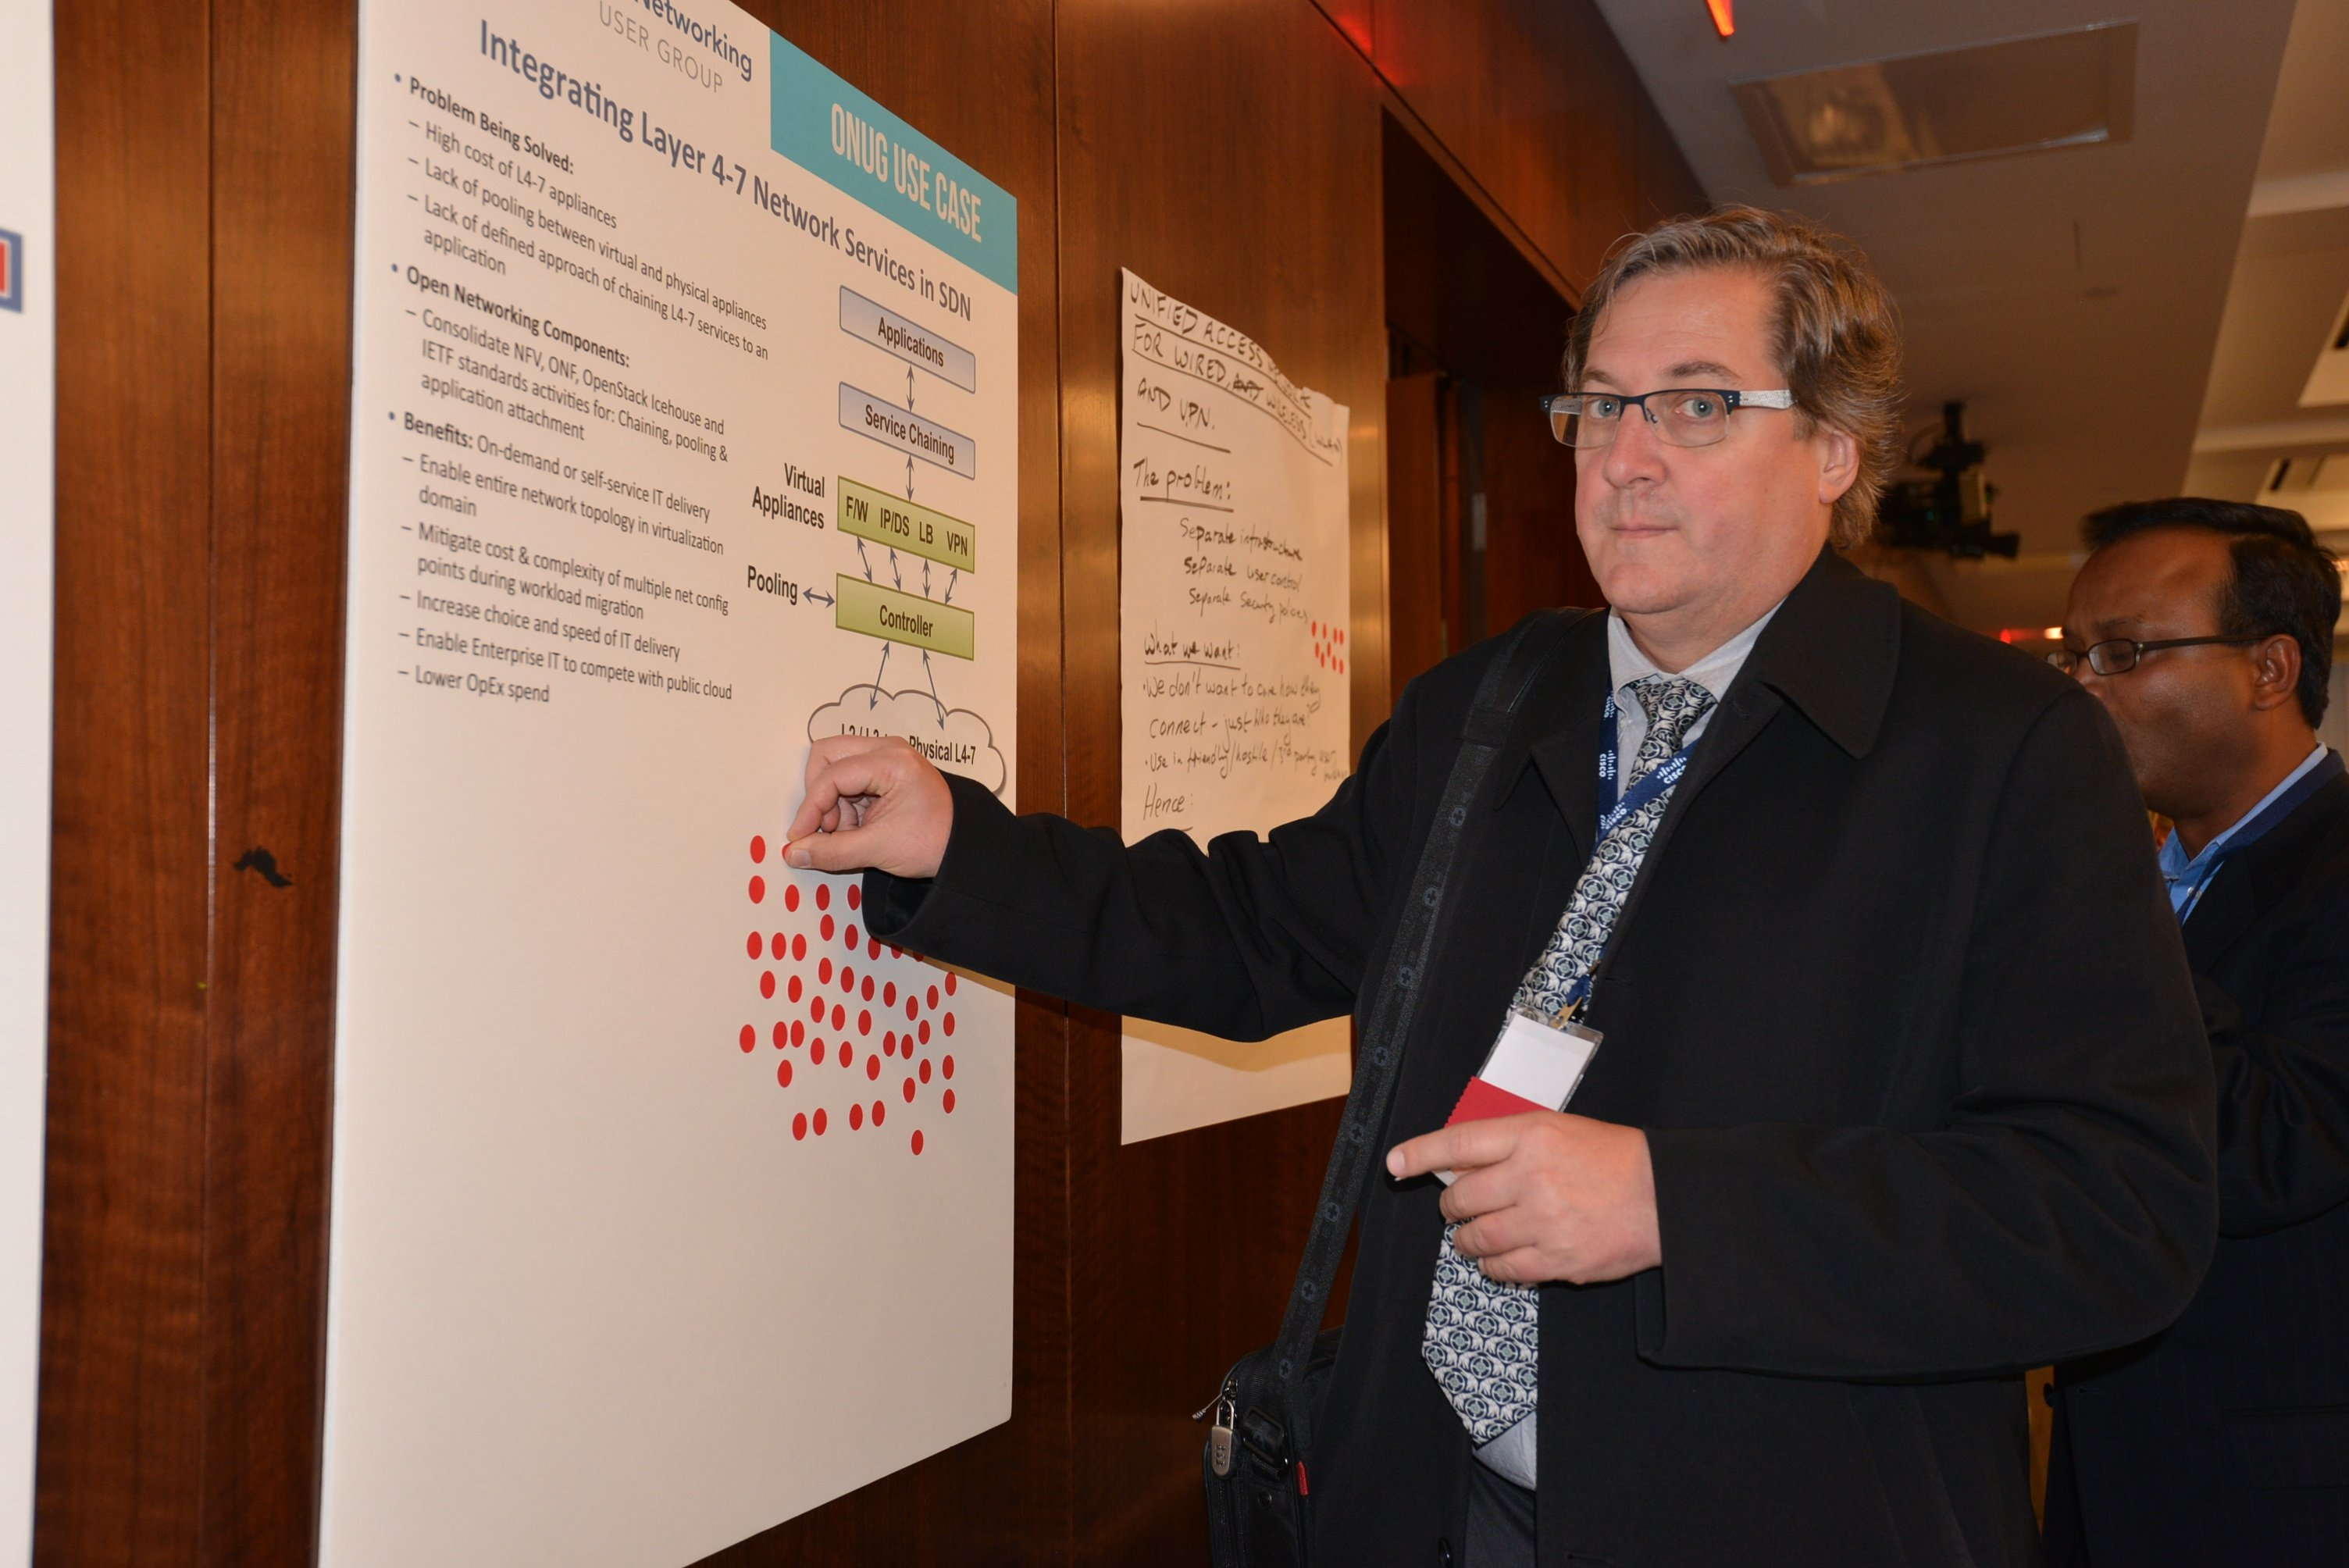 Greg Lavender voting on one of the top three Open Networking Industry Requirements use cases